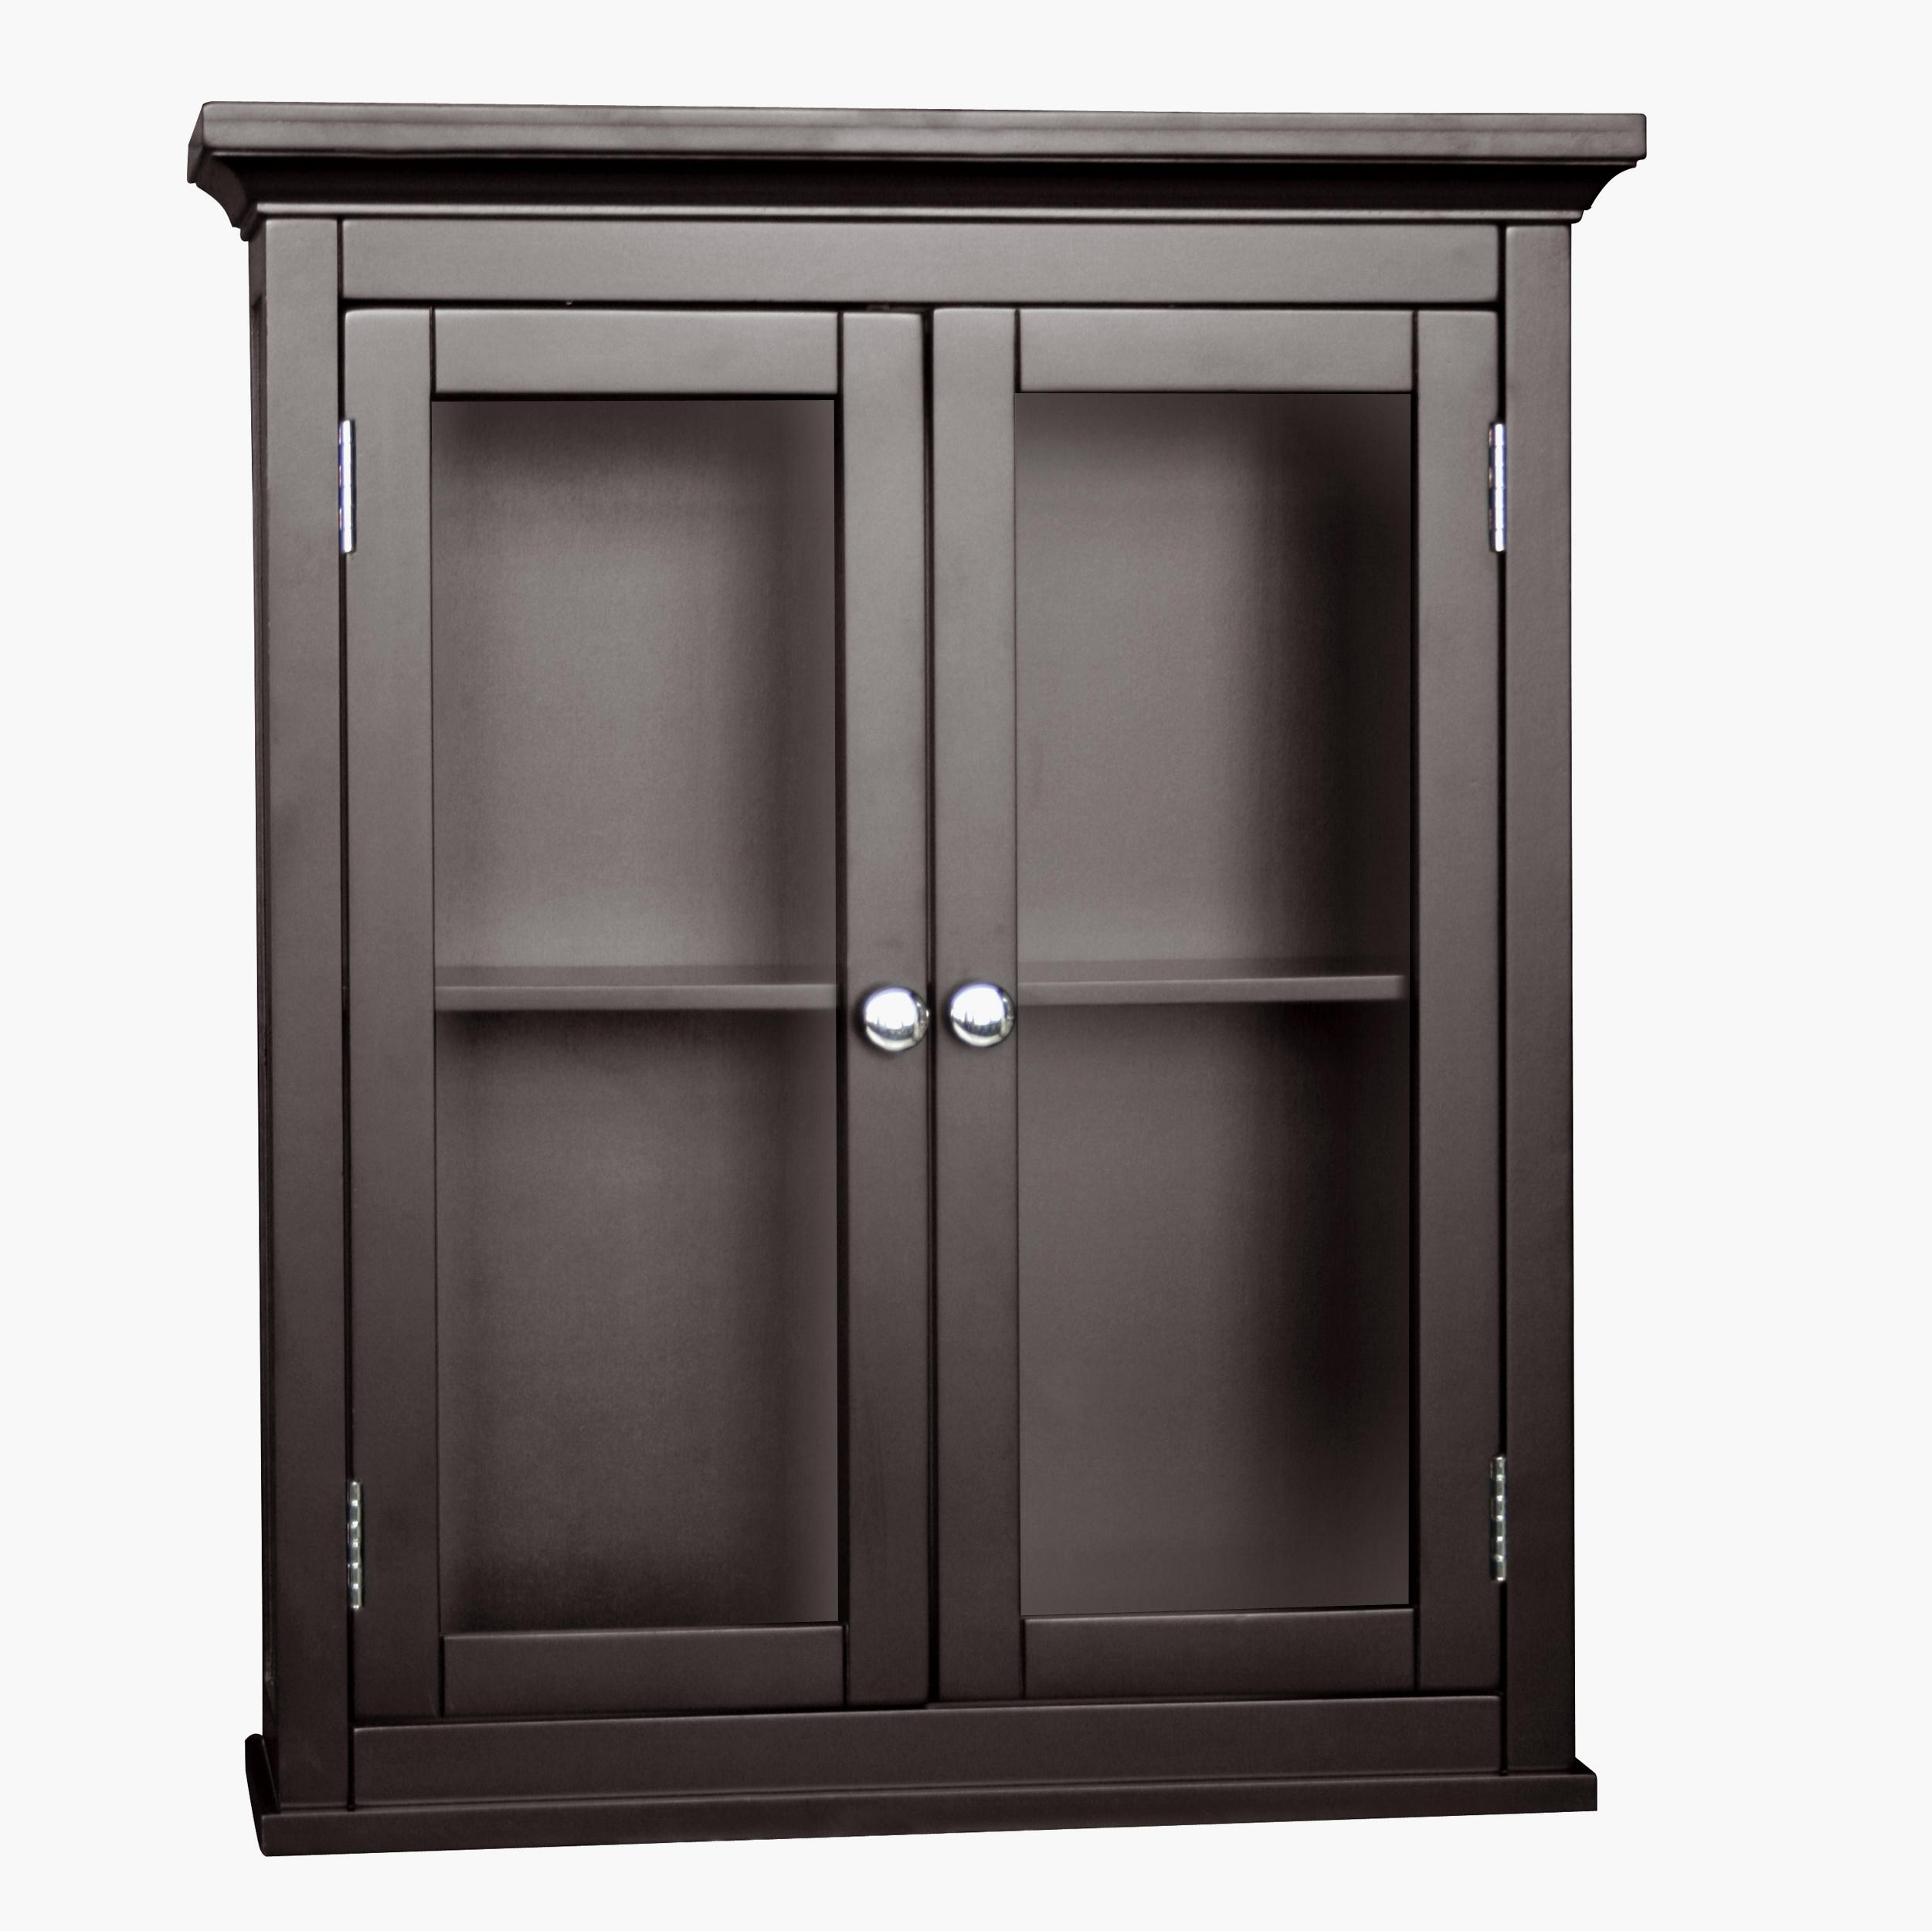 Bathroom Wall Cabinets Overstock